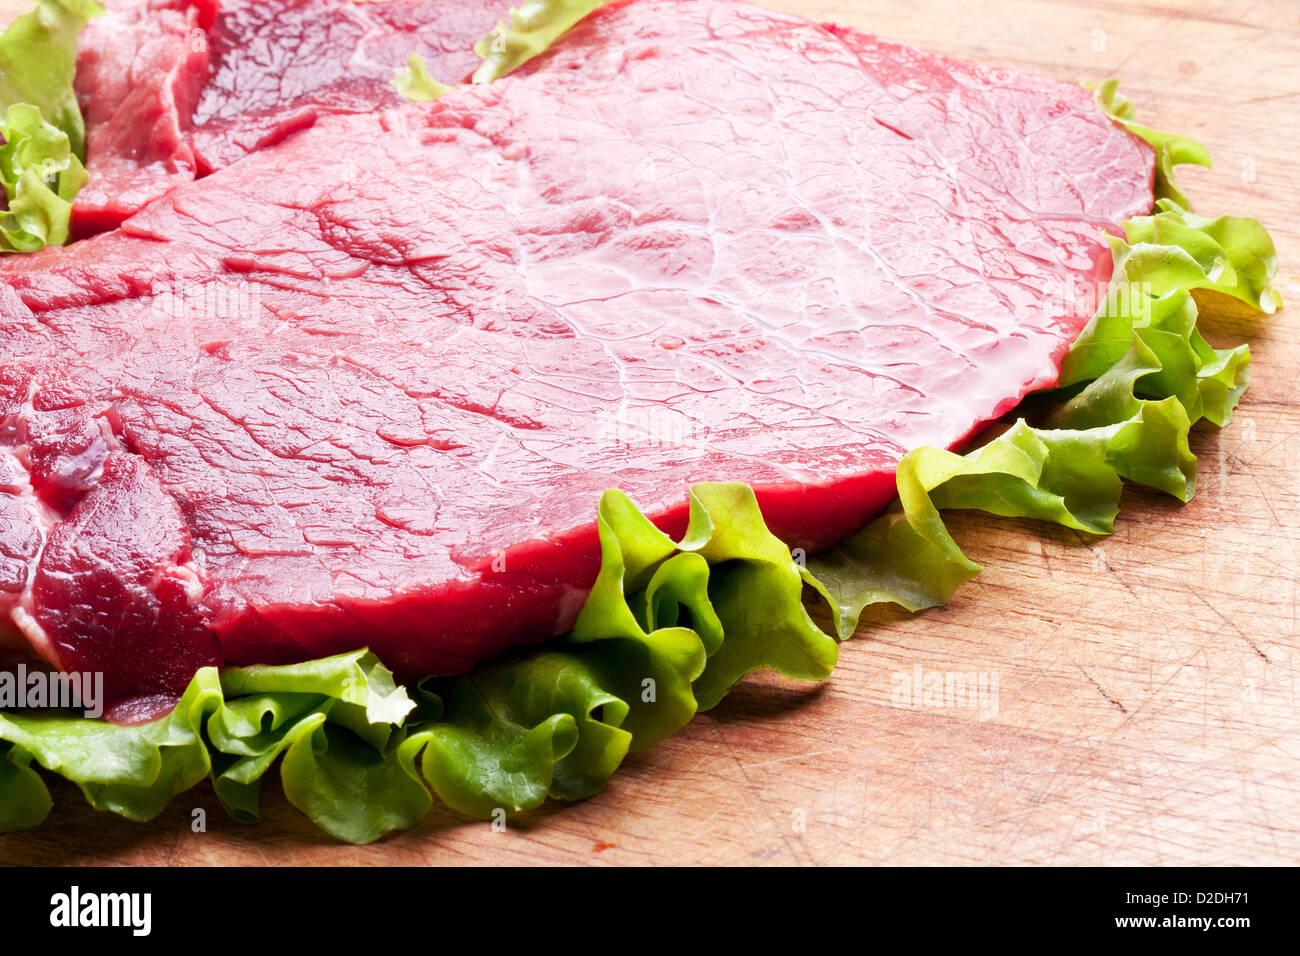 Raw meat on lettuce leaves. Wooden background. - Stock Image